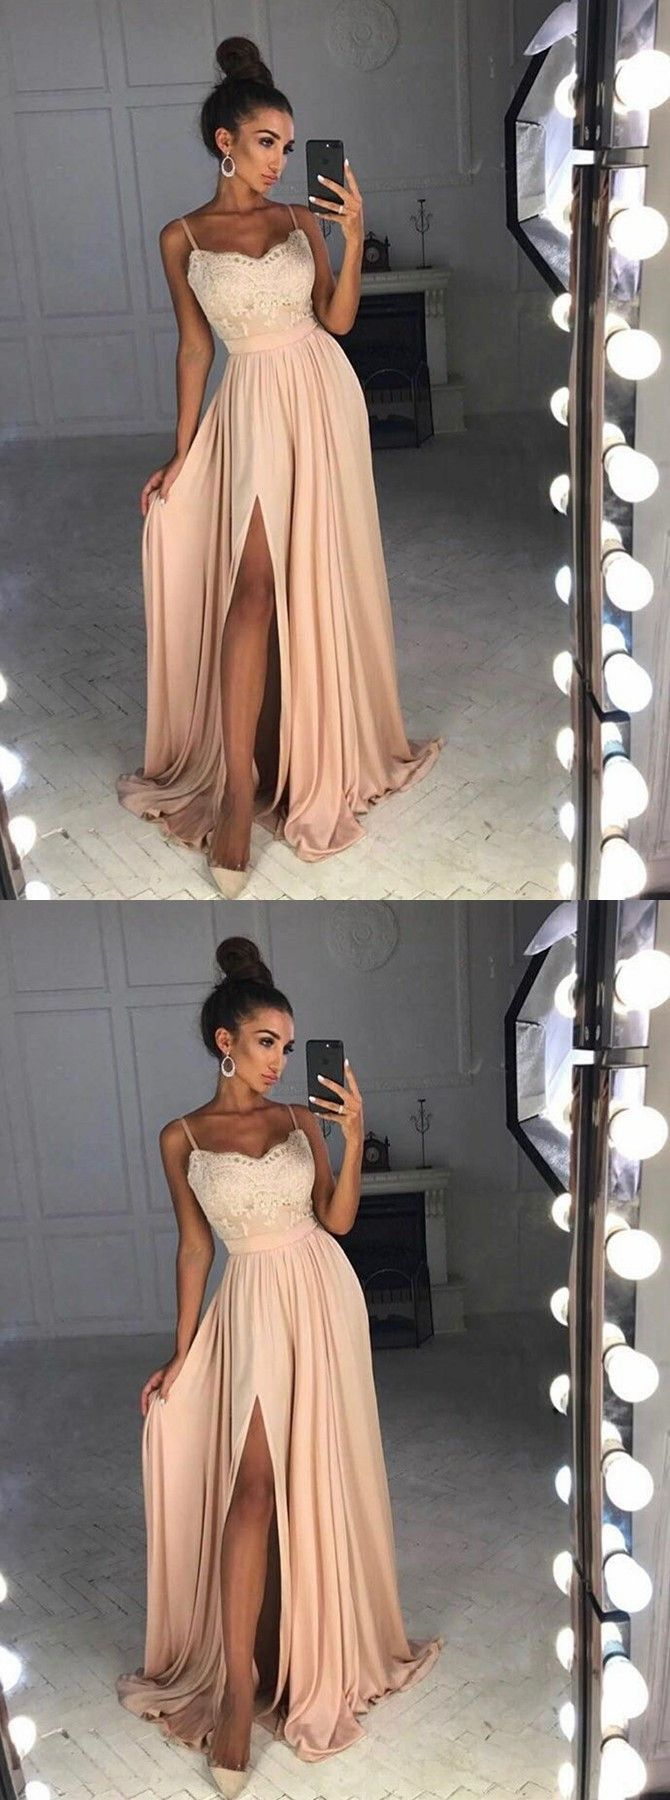 simple blush prom party dresses, elegant lace evening gowns, modest split formal gowns.